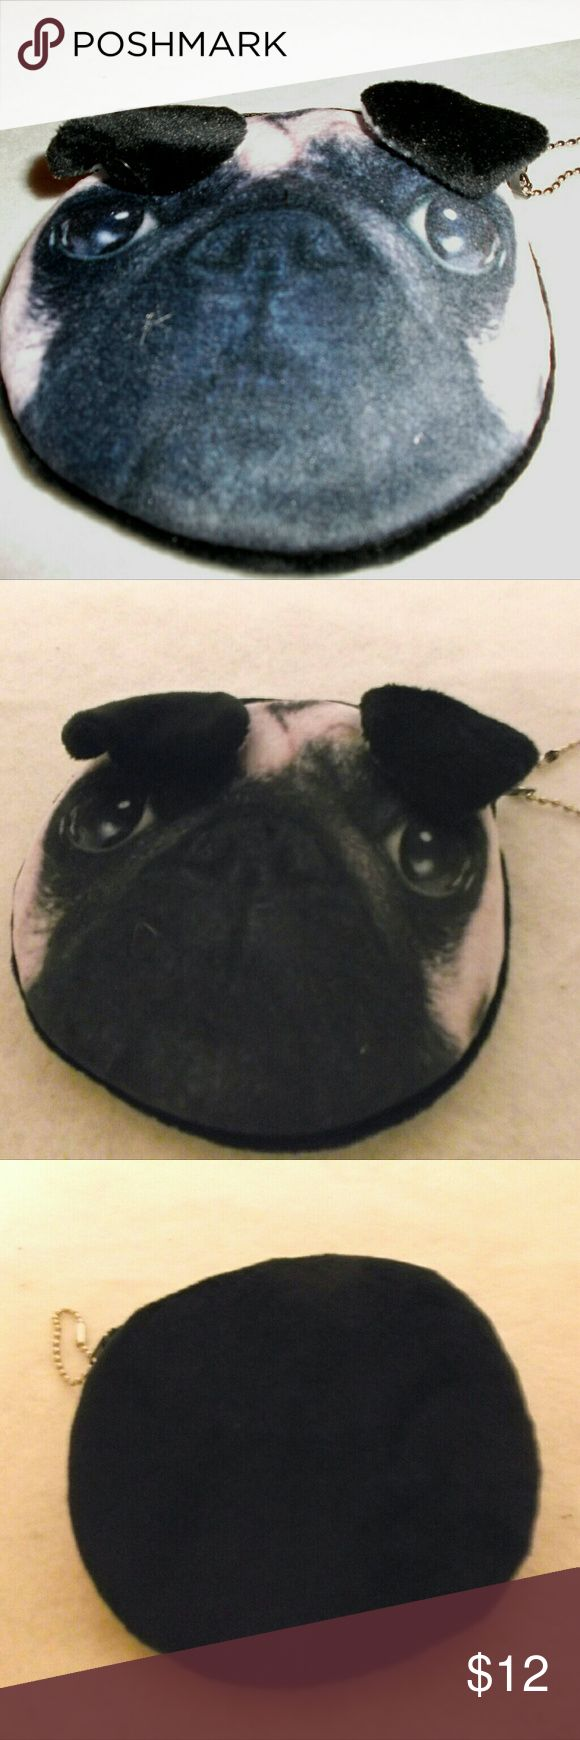 "Cute Pug Dog Mini Pouch Coin Purse New without tags!  A super cute Pug mini pouch coin purse.   Measures approximately 4.5"" X 4"". Very soft and plush with a white lining.   Be sure to check out the adorable Pug necklace! Bags Mini Bags"